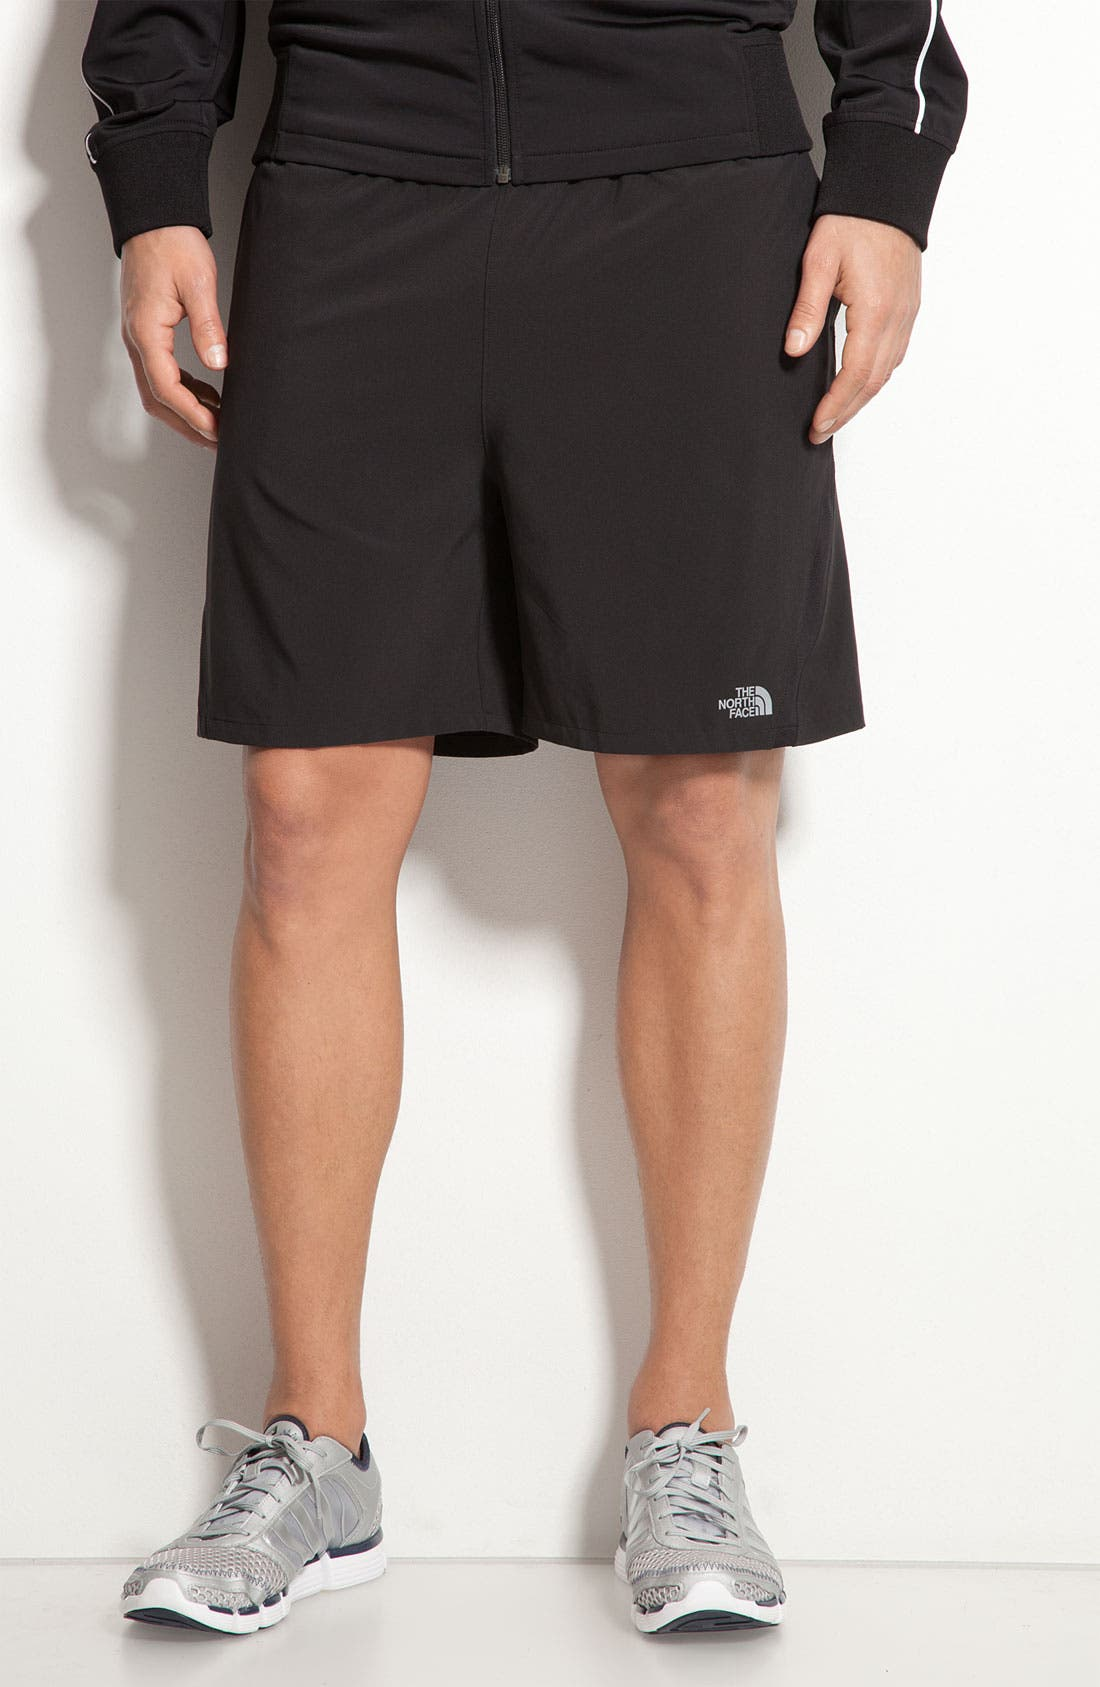 Alternate Image 1 Selected - The North Face 'Agility' Stretch Woven Short